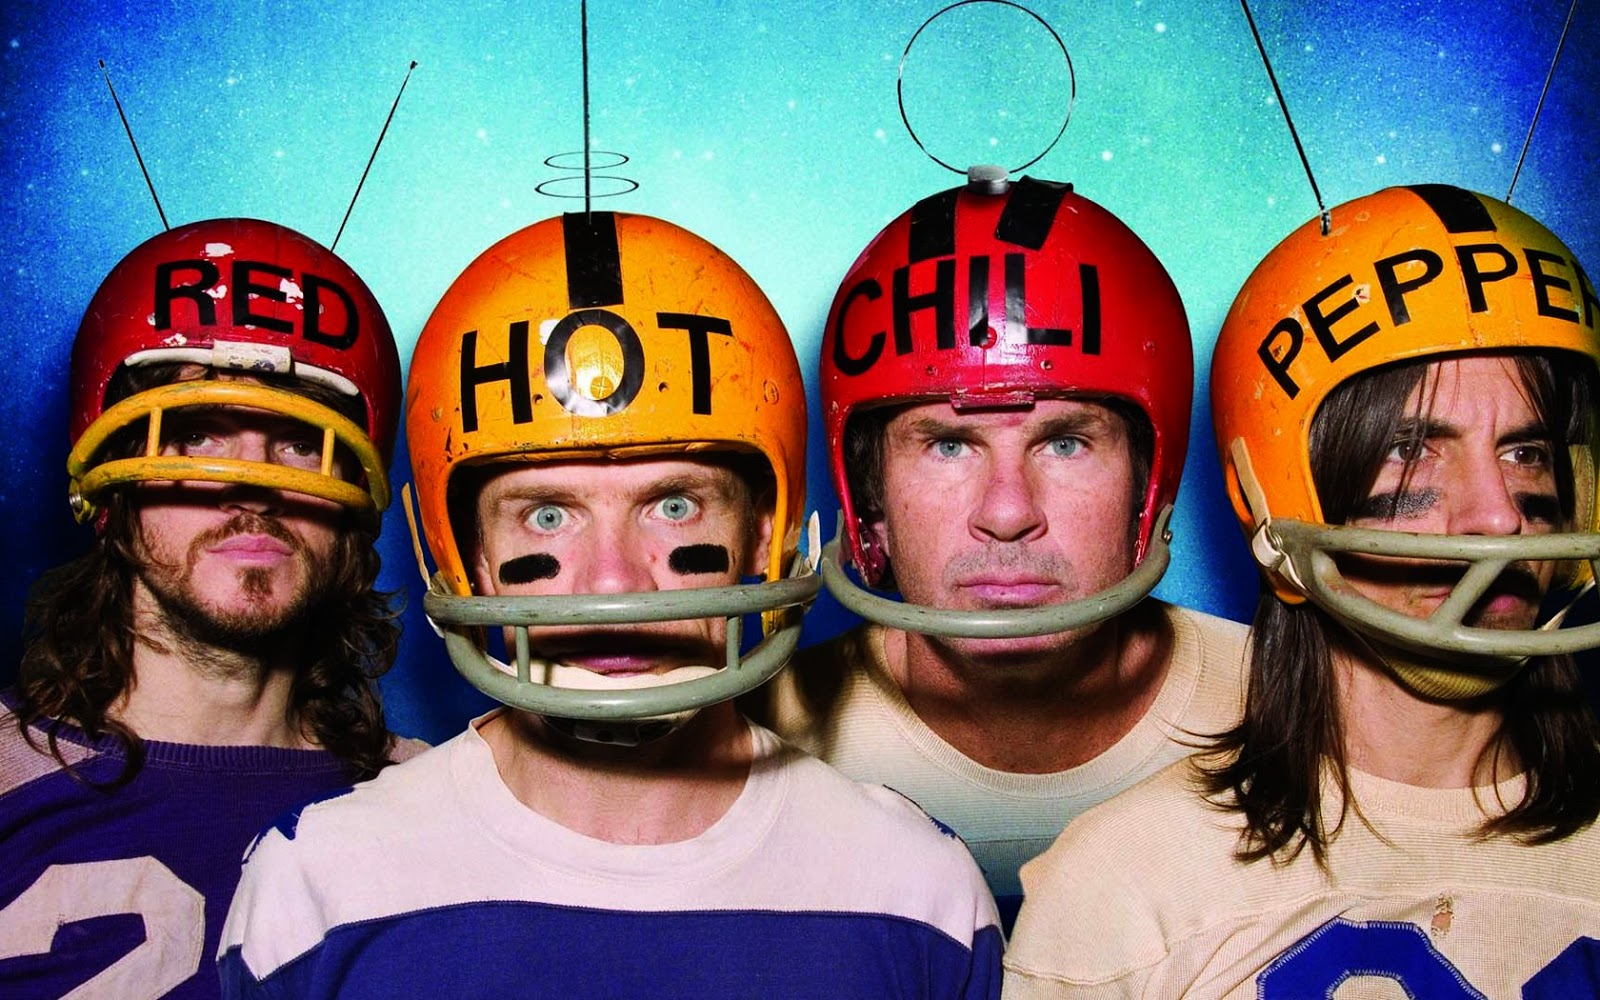 http://3.bp.blogspot.com/-tOi-aAF47P0/UHWeso_0FtI/AAAAAAAAFXU/-p9j5WMB_OE/s1600/Red-Hot-Chili-Peppers-with-Nfl-Uniform-and-Helmet-HD-Wallpaper_Vvallpaper.Net.jpg